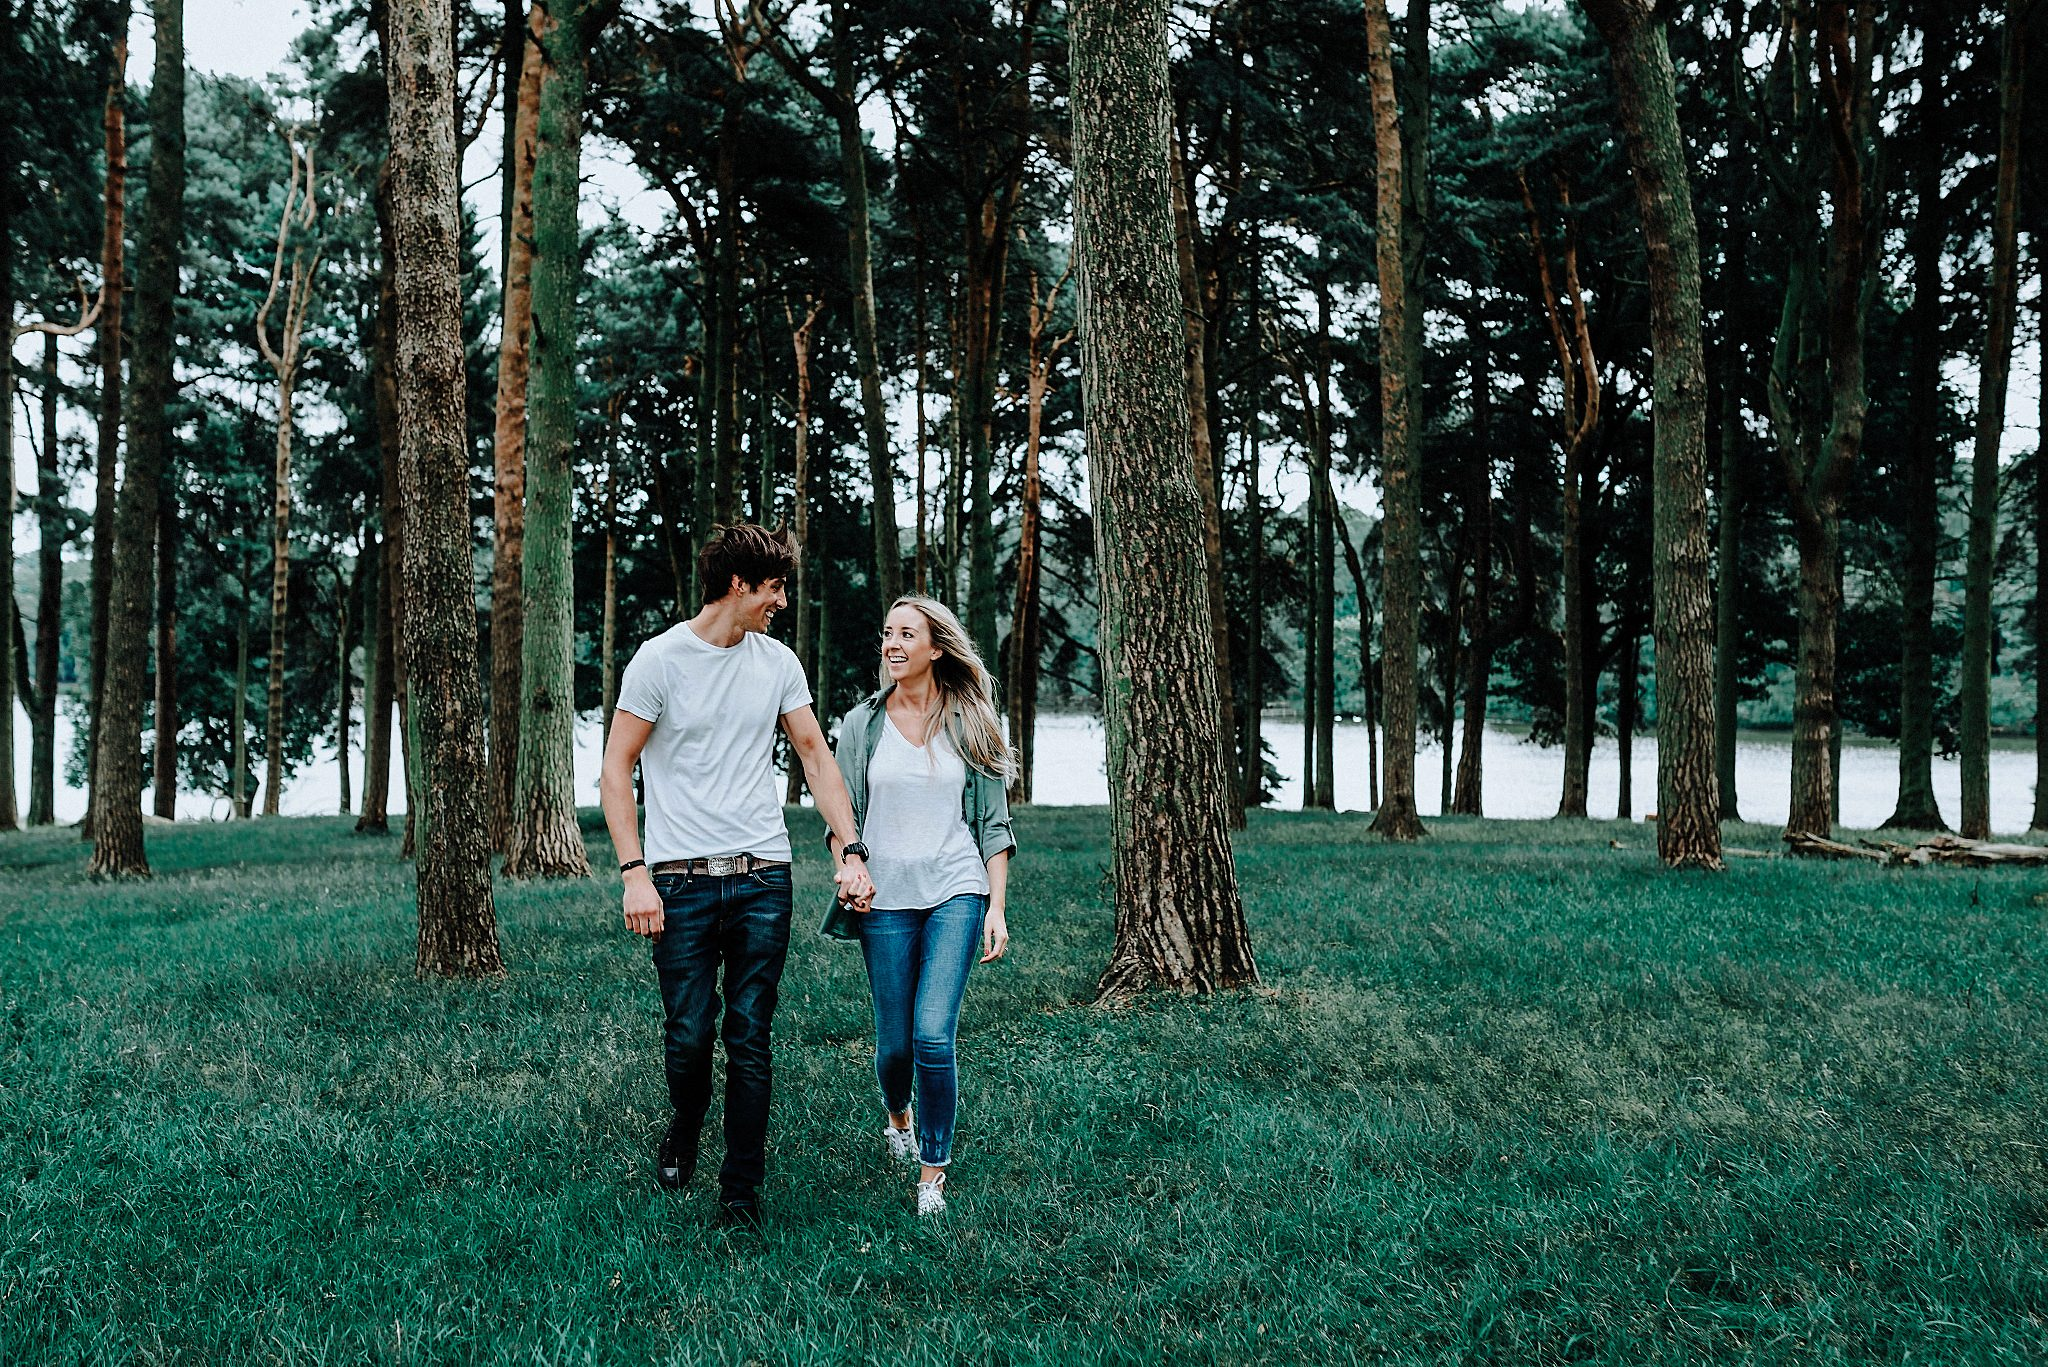 Lauren & Christopher walking hand in hand on their pre-wedding session at Tatton Park, Cheshire